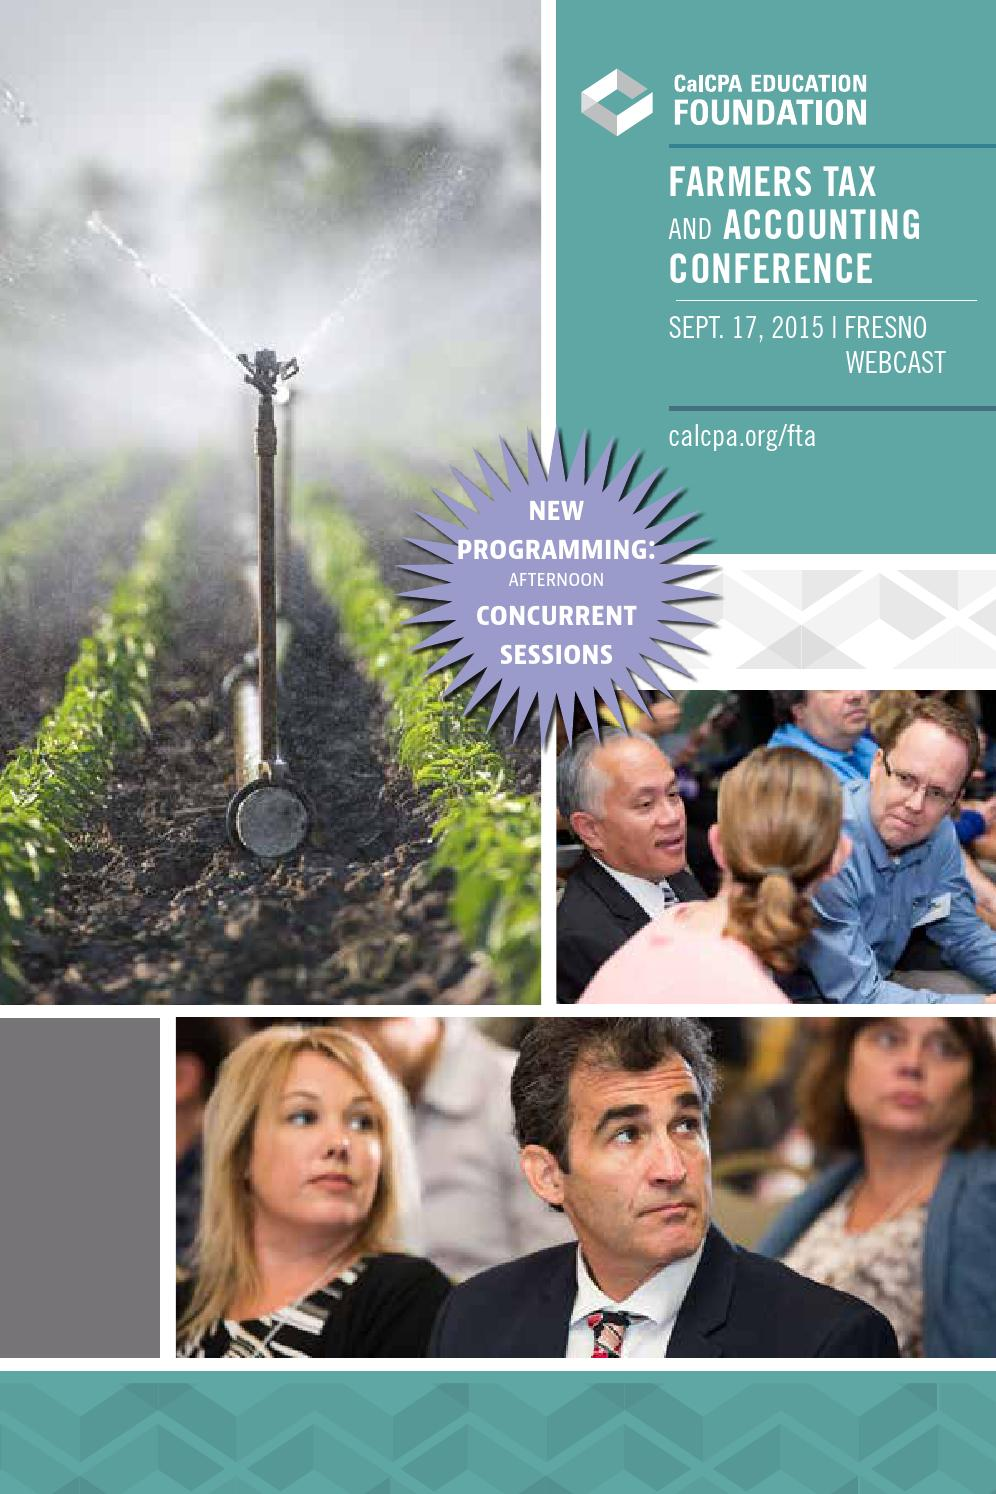 Farmers Tax and Accounting Conference by CalCPA and CalCPA